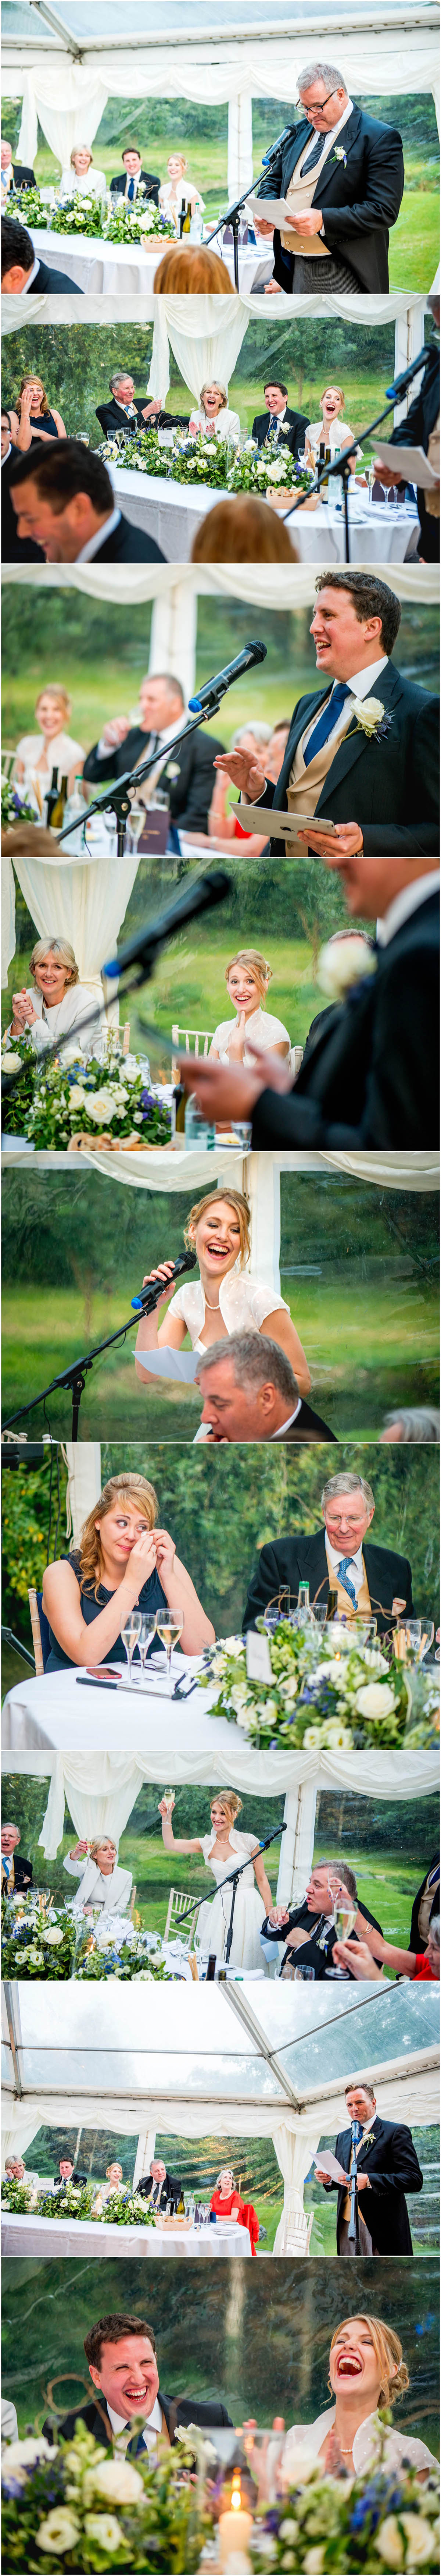 Susie and Ed's Dorset Wedding in Alton Pancras, Dorset, near Cerne Abbas, By Lisa Carpenter Photography, West Midlands, Birmingham based photographer, speeches